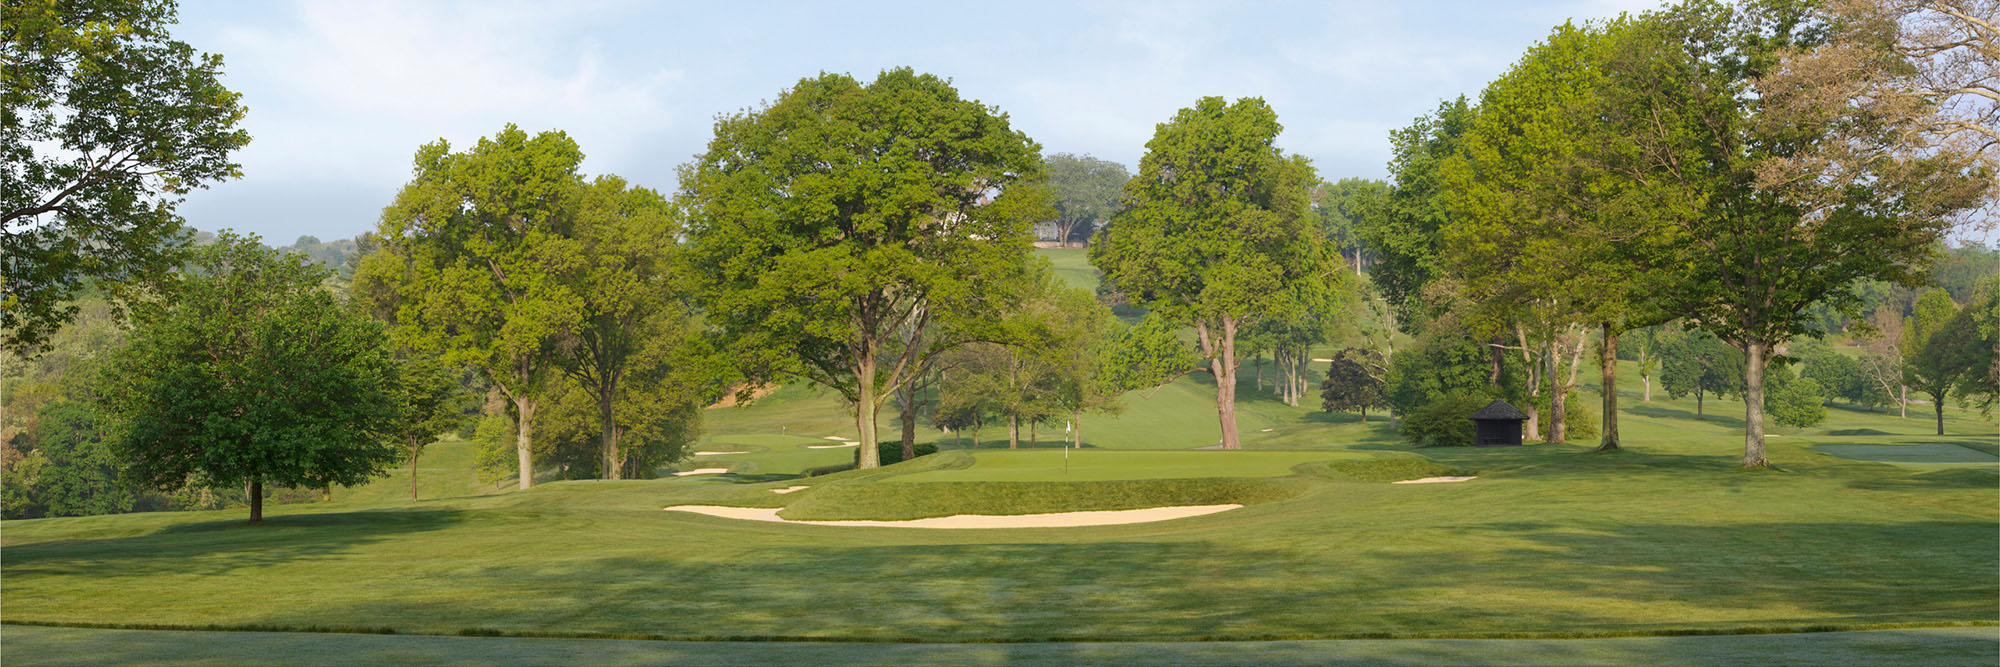 Golf Course Image - Pittsburgh Field Club No. 4